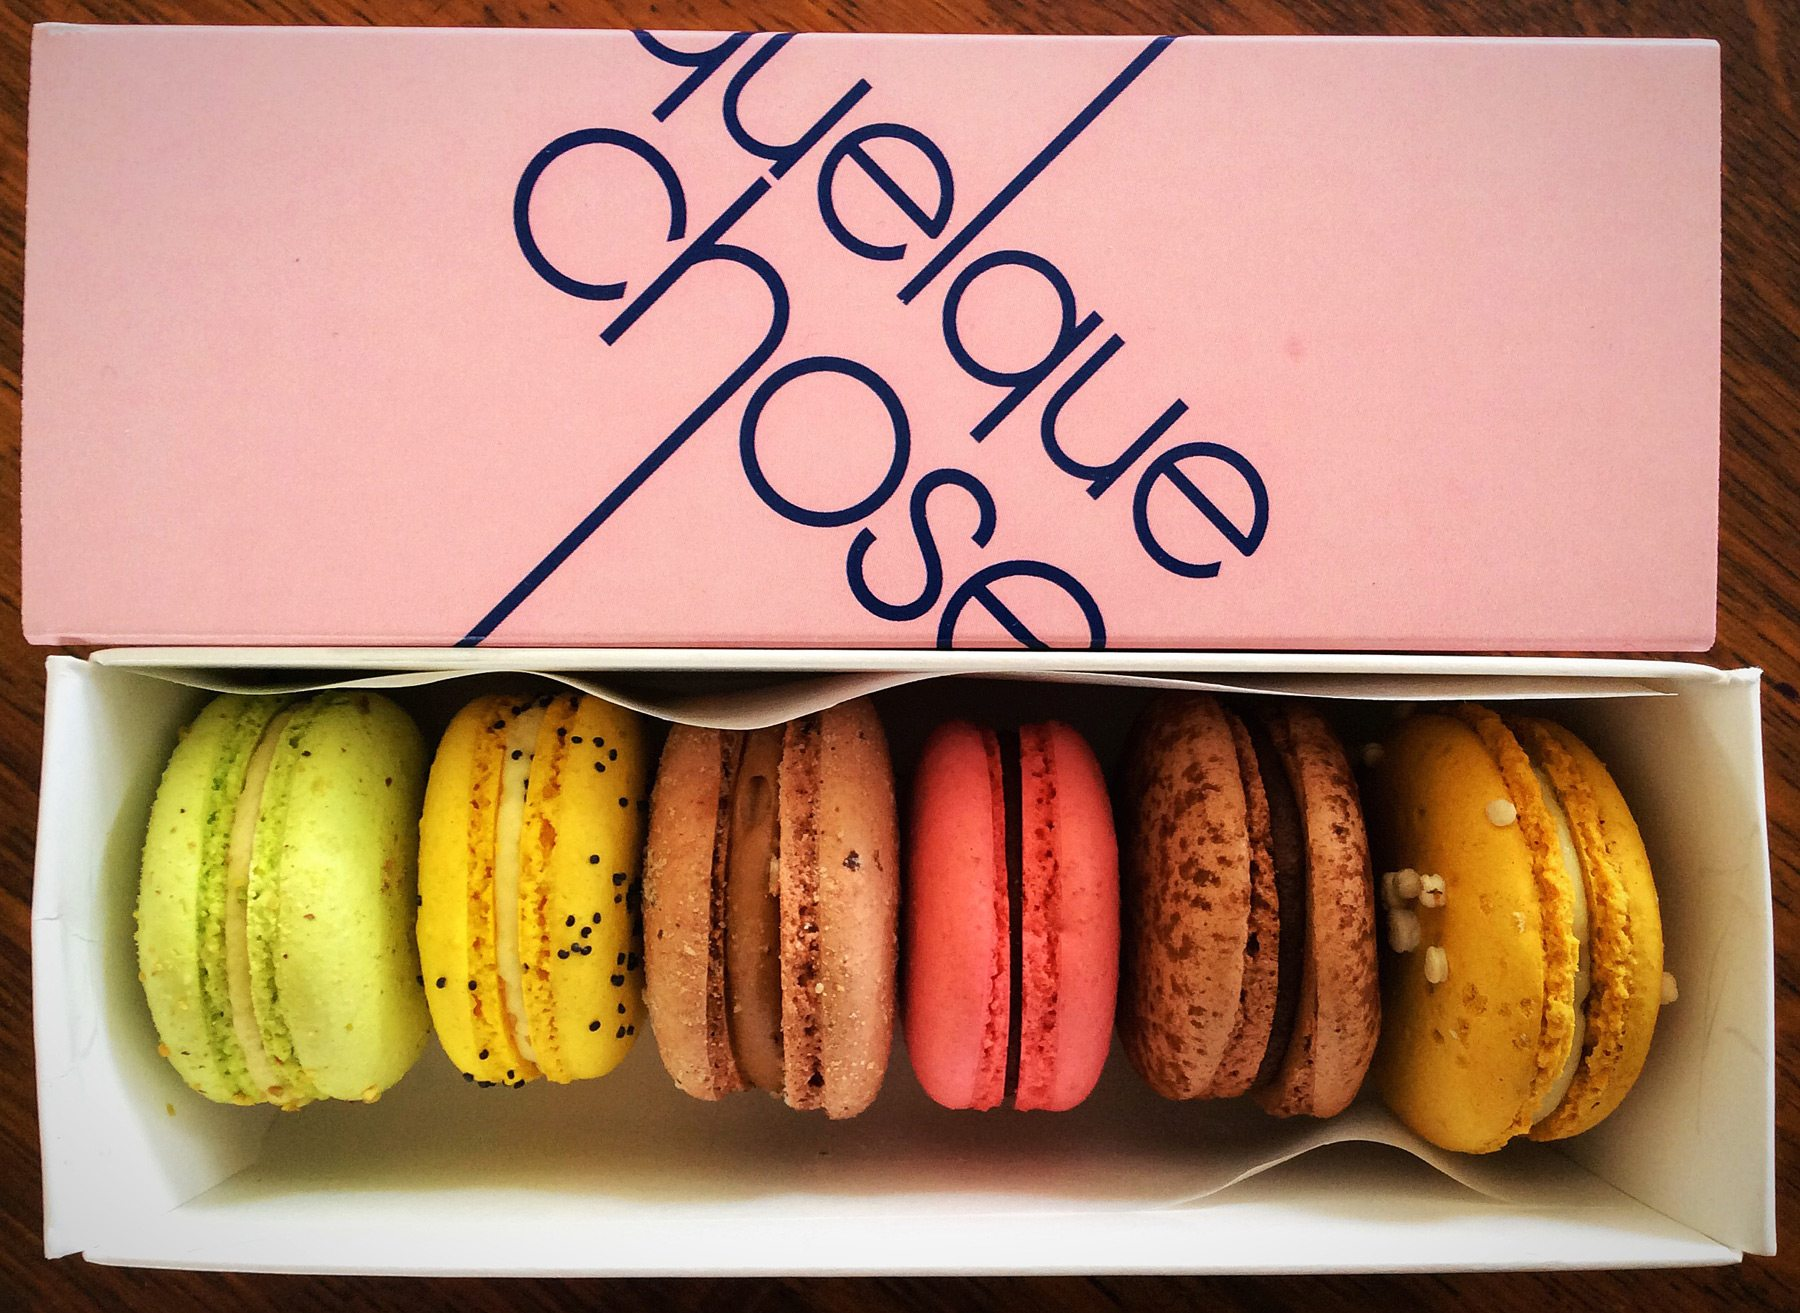 A box of macarons comes with a picture guide so you can remember what you've ordered. This selection includes pistachio, lemon-poppyseed, and raspberry-chocolate